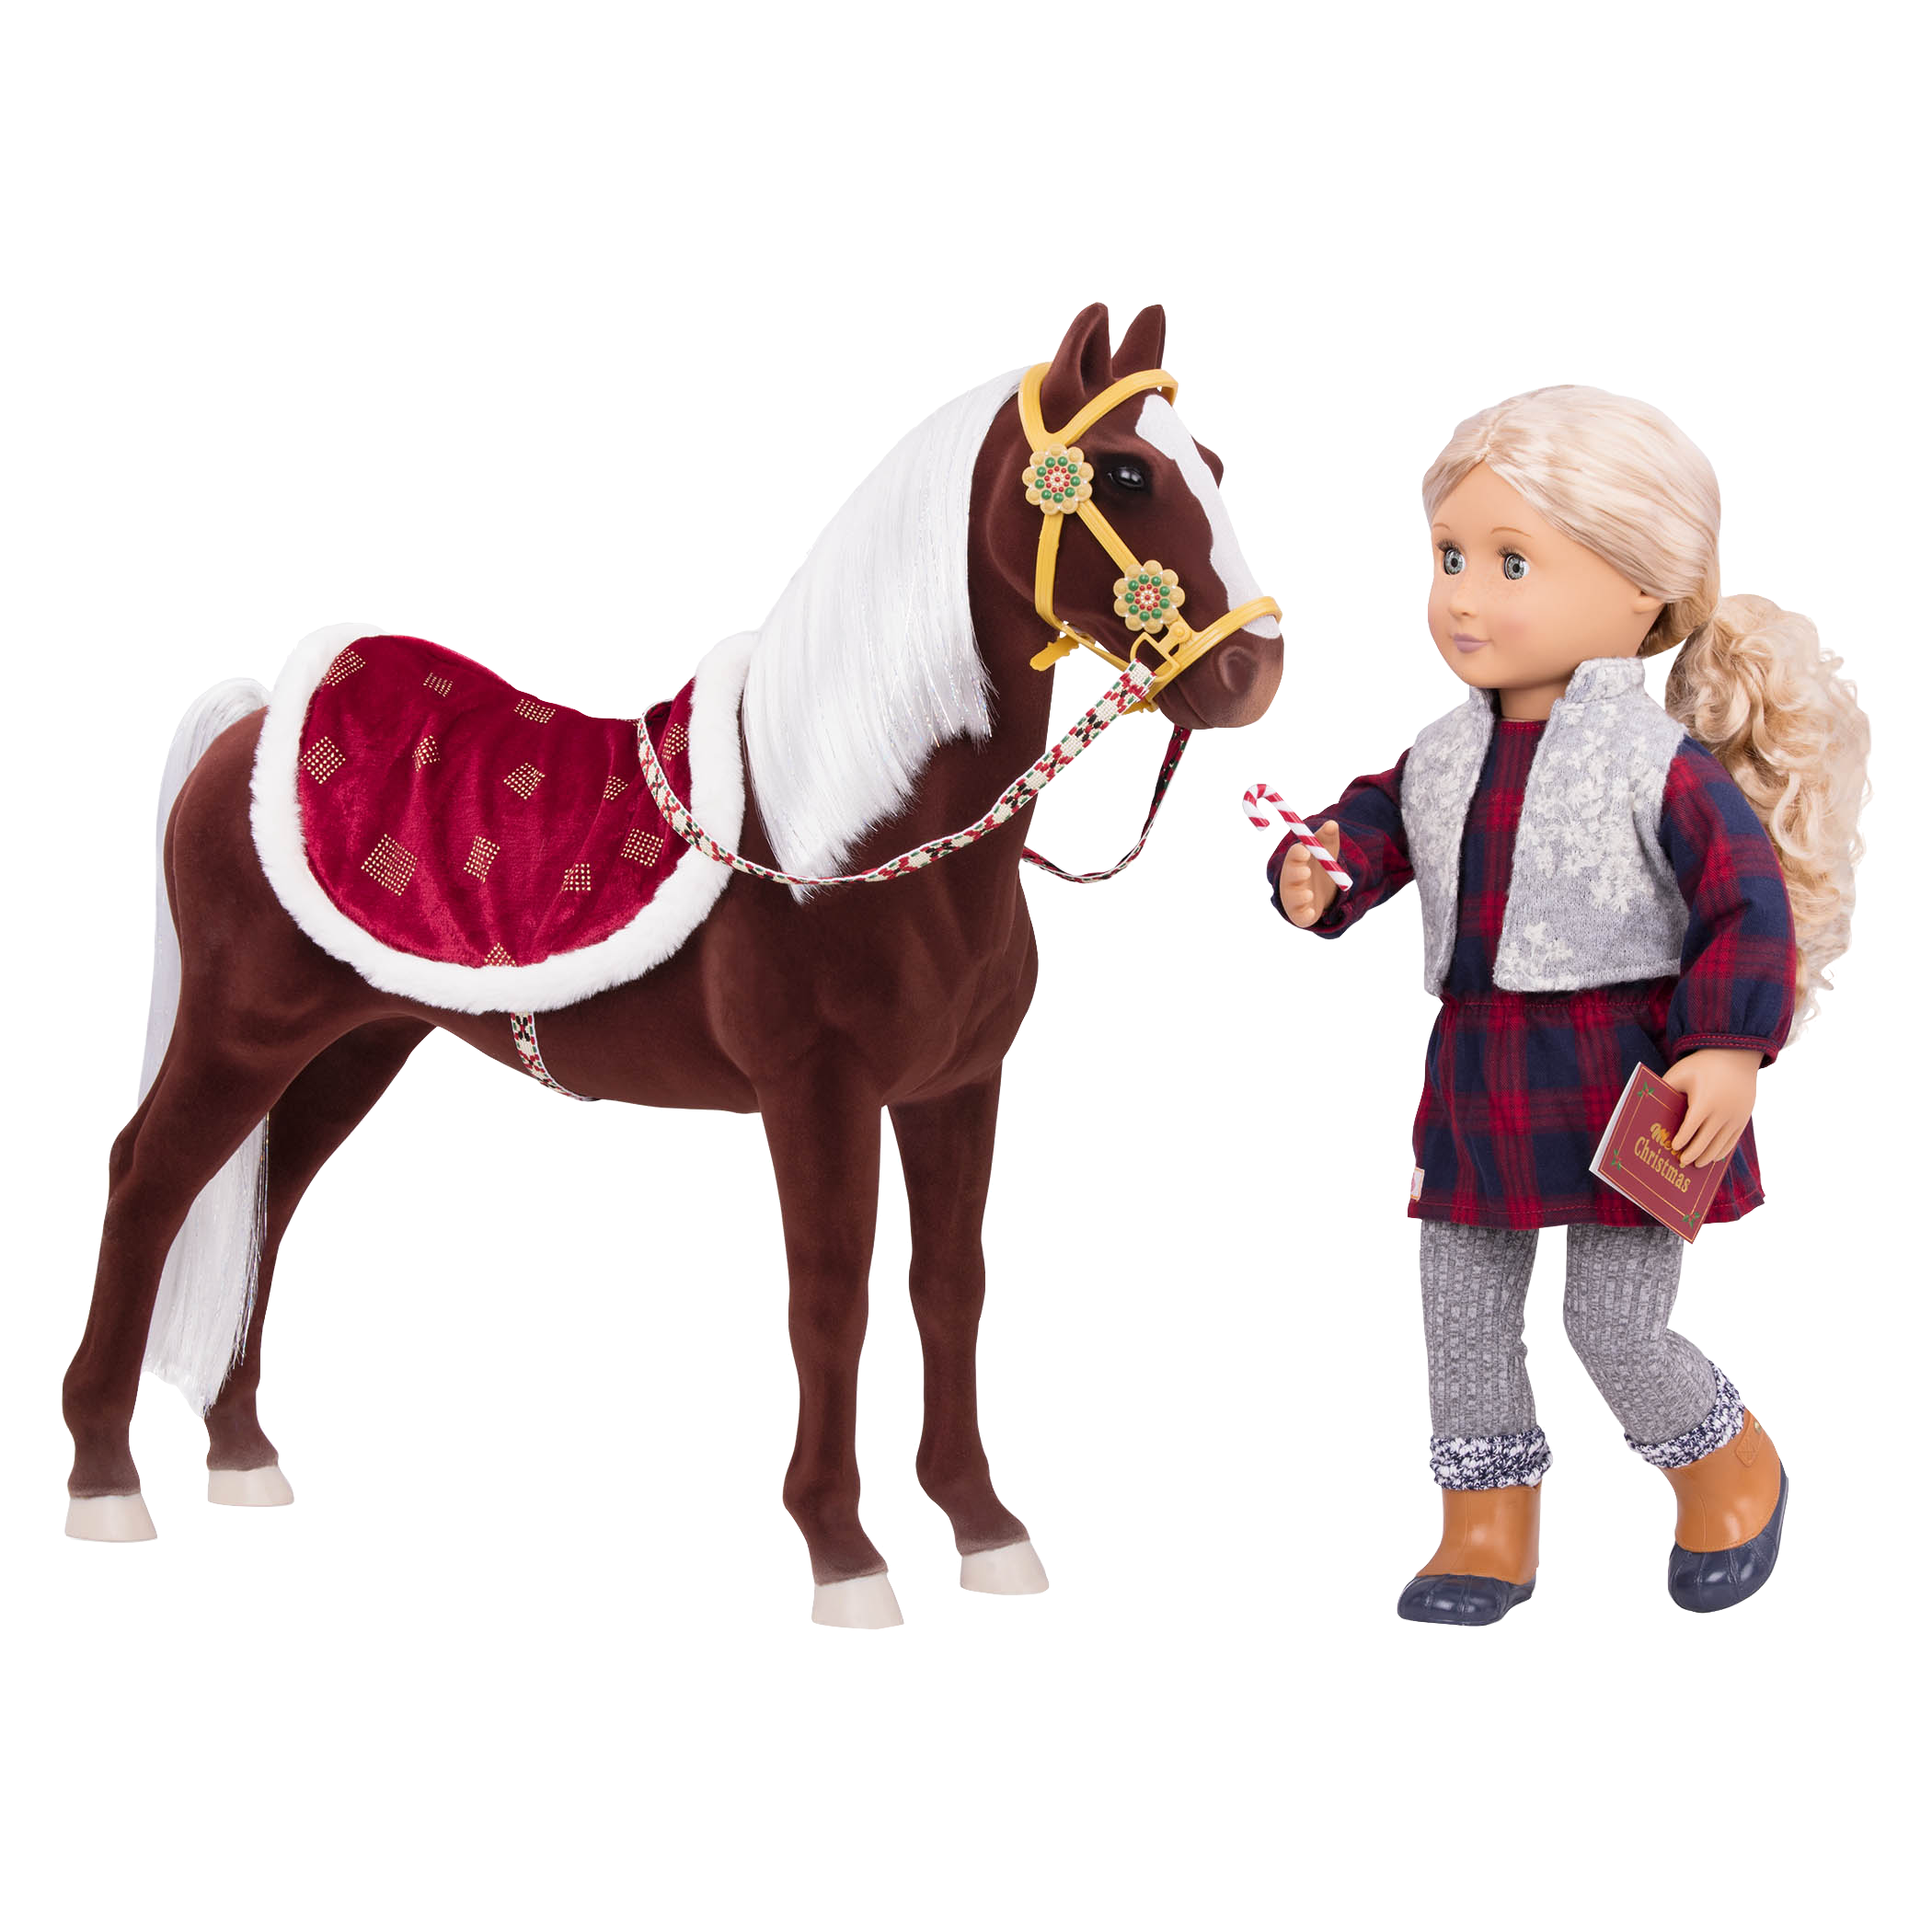 Coral with Horse and candy canes